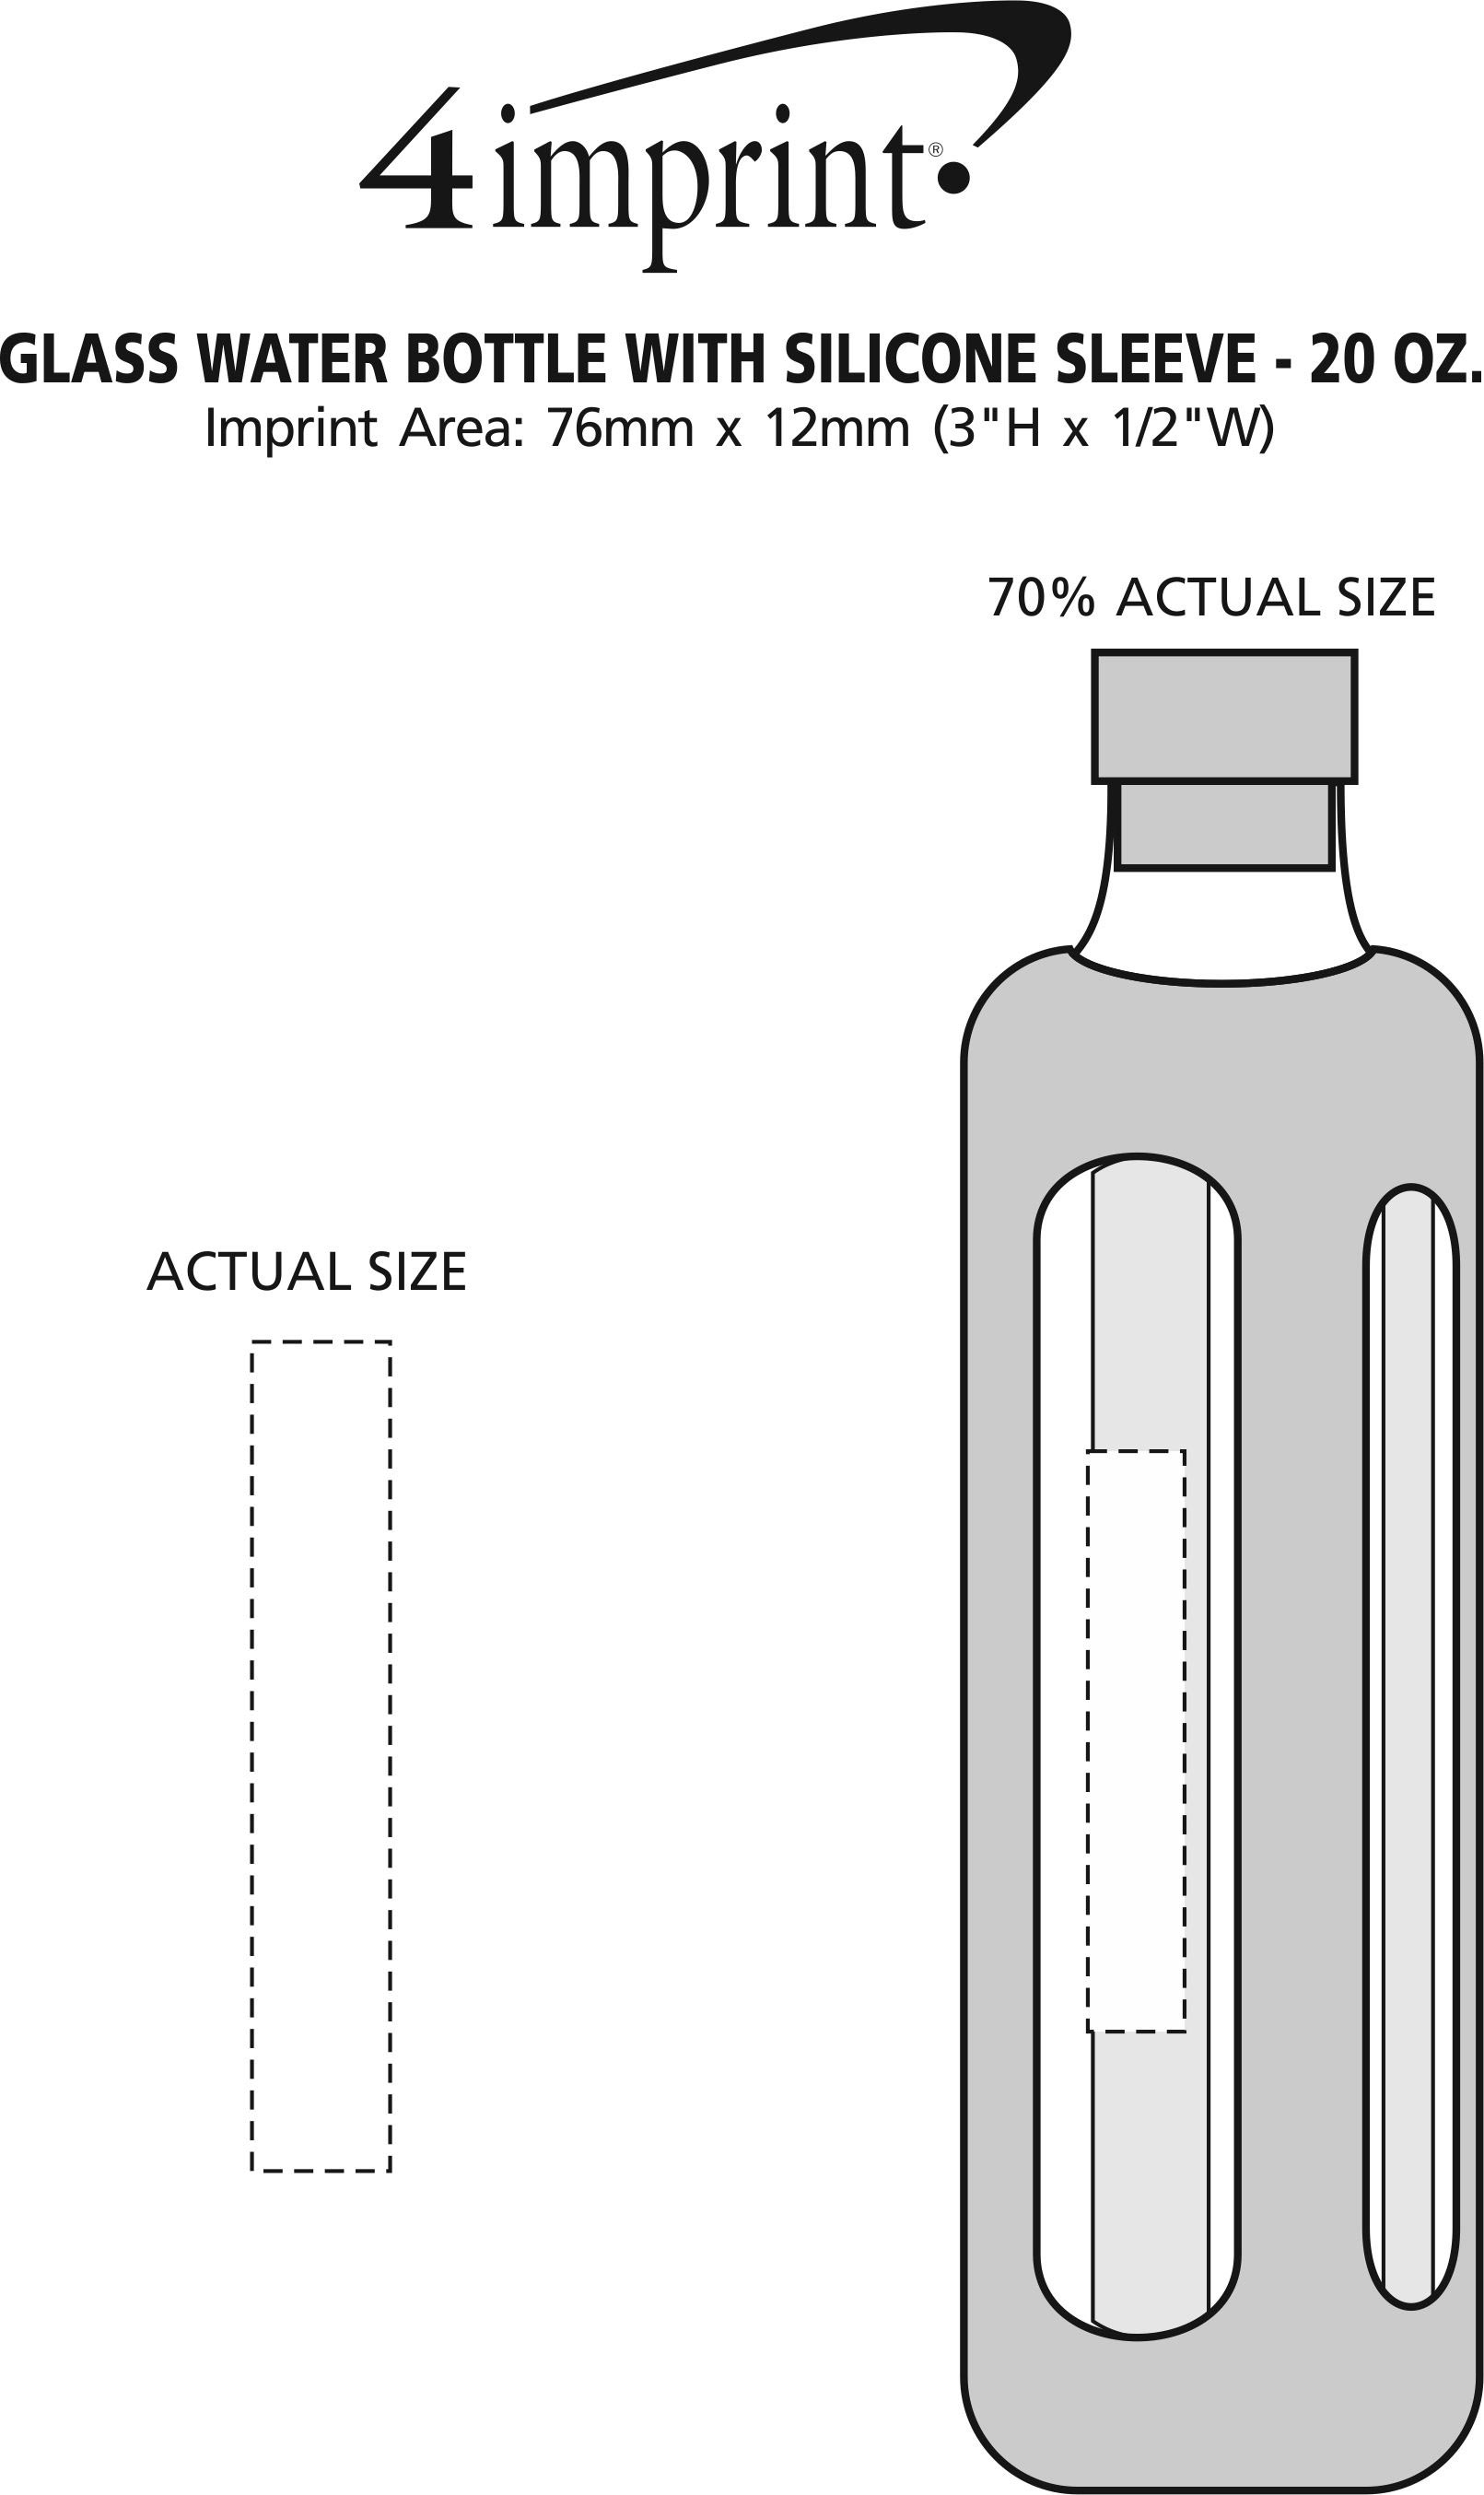 Imprint Area of Glass Water Bottle with Silicone Sleeve - 20 oz.